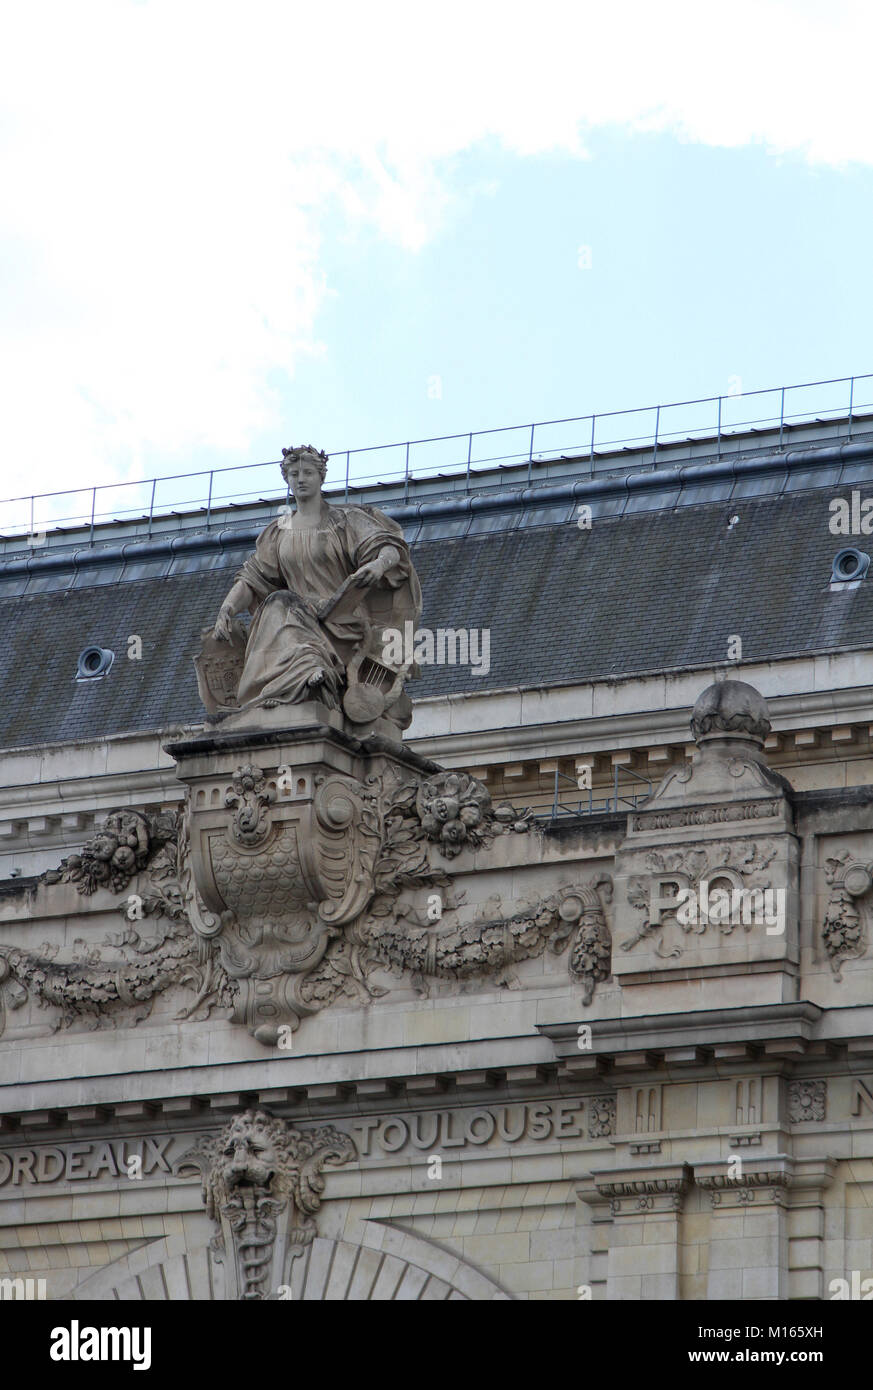 Statue with Book on the Roof Terrace of the Orsay Museum, Paris, France. Stock Photo